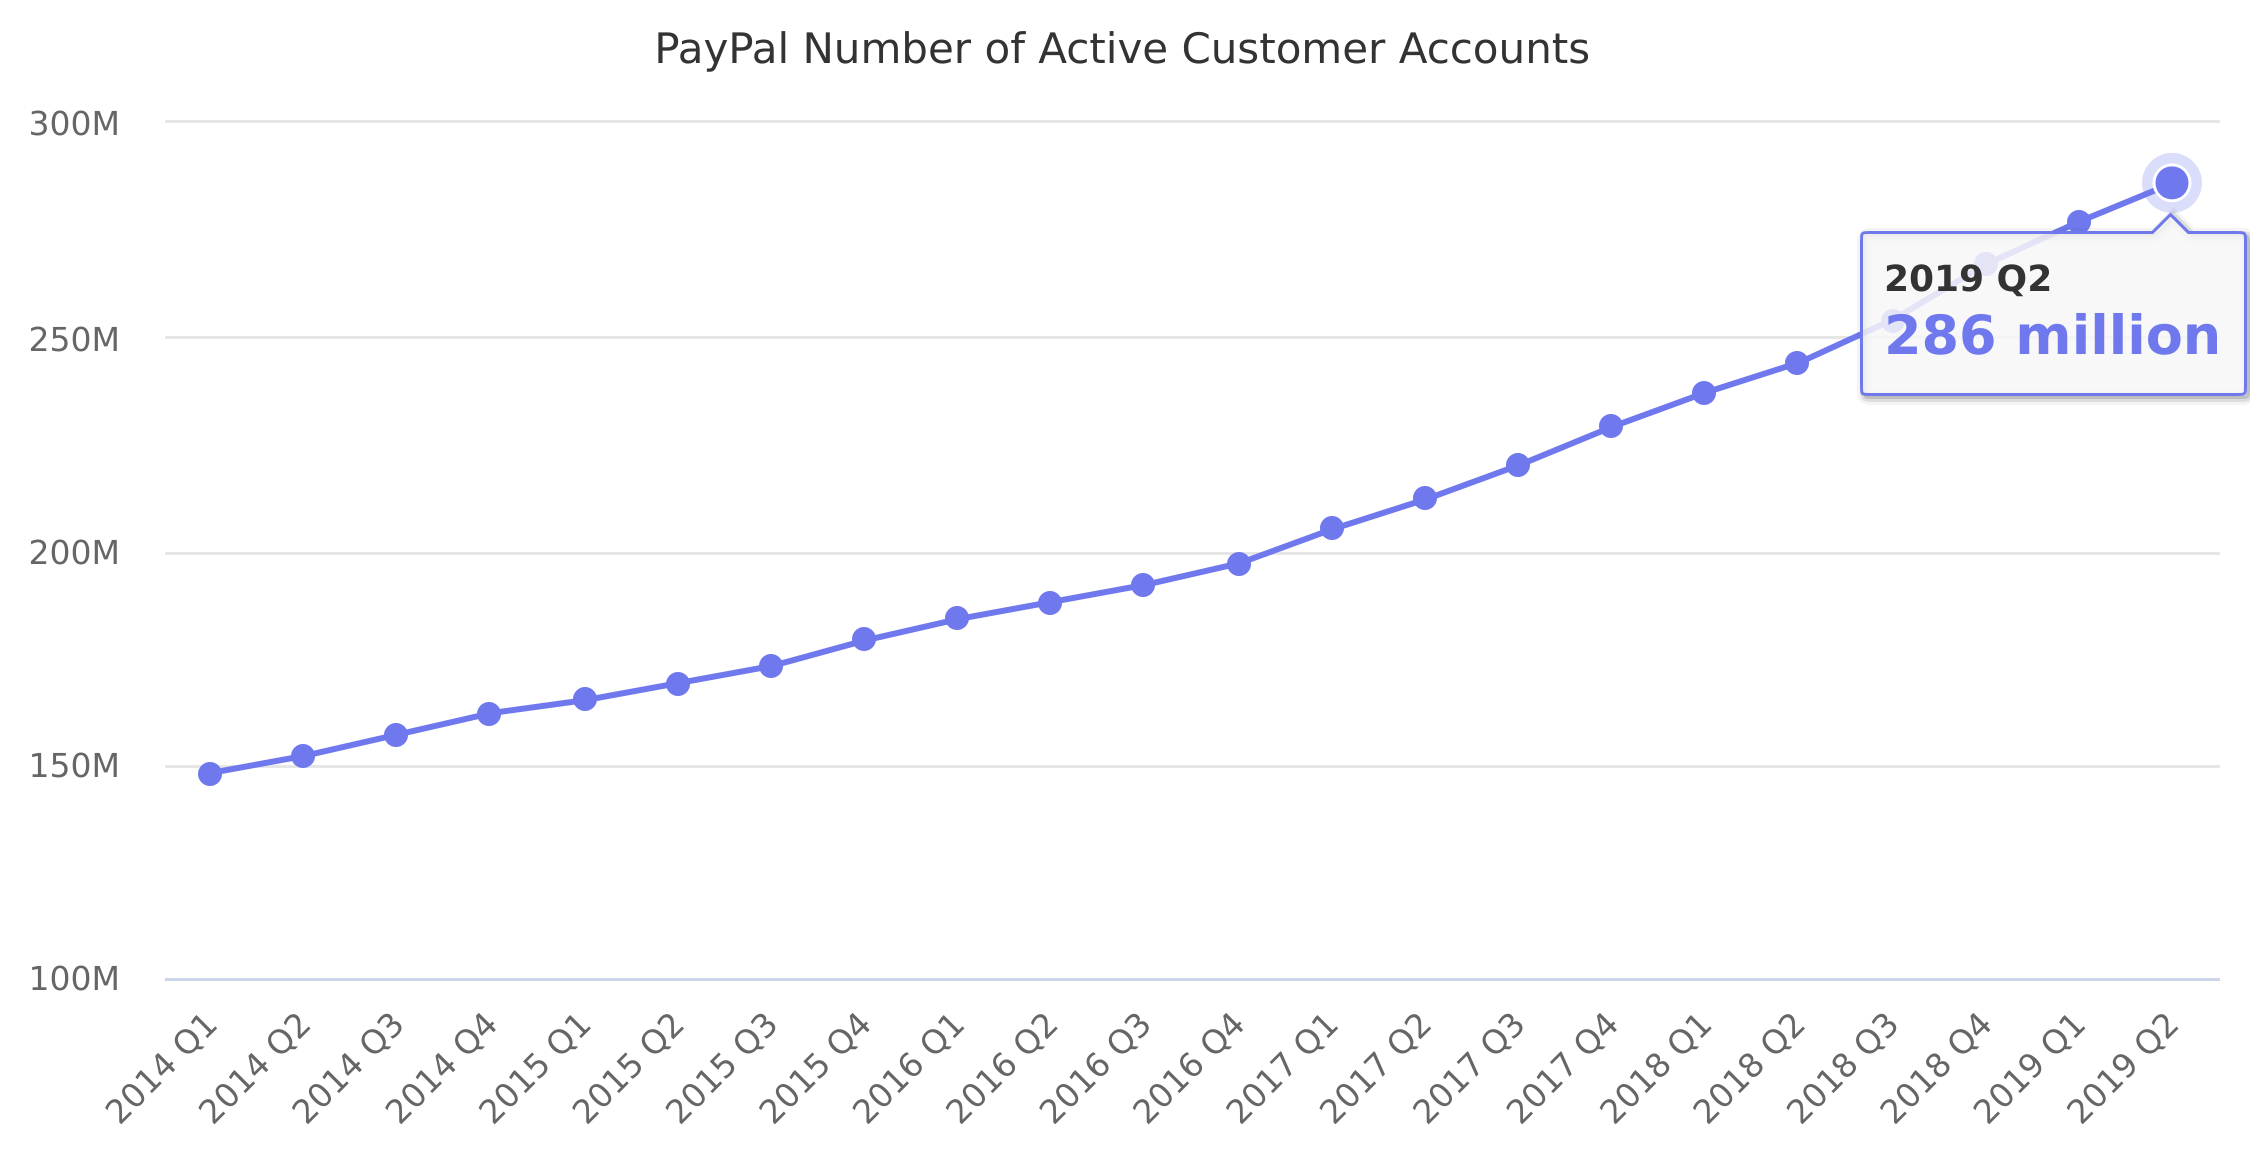 PayPal Number of Active Customer Accounts 2014-2018